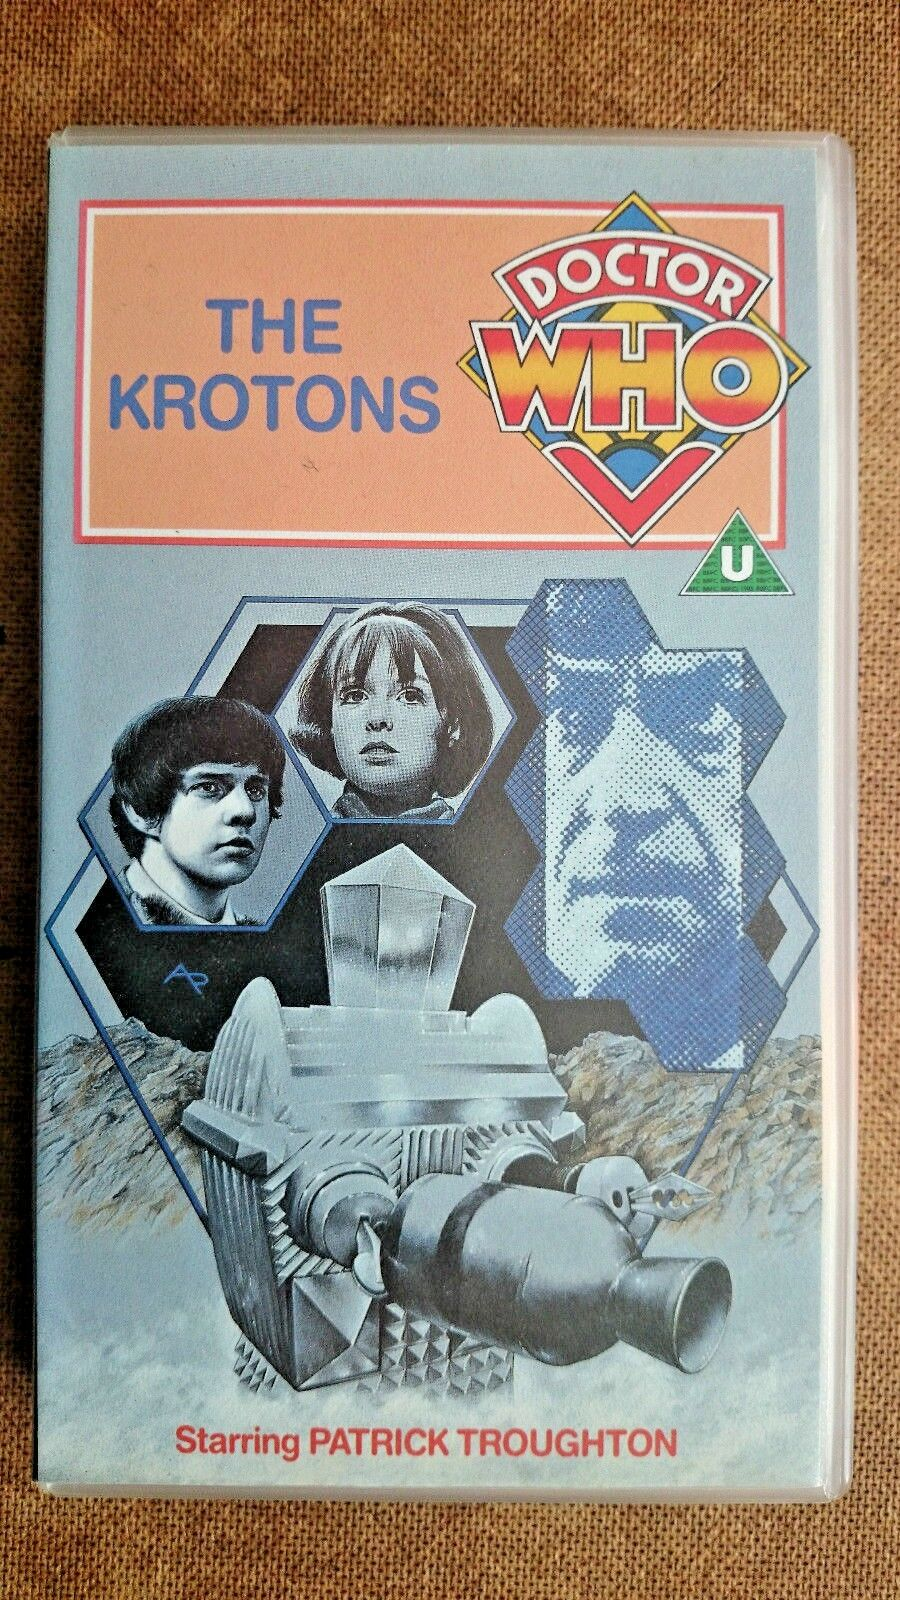 Doctor Who - The Krotons (VHS, 1995) - Patrick Troughton